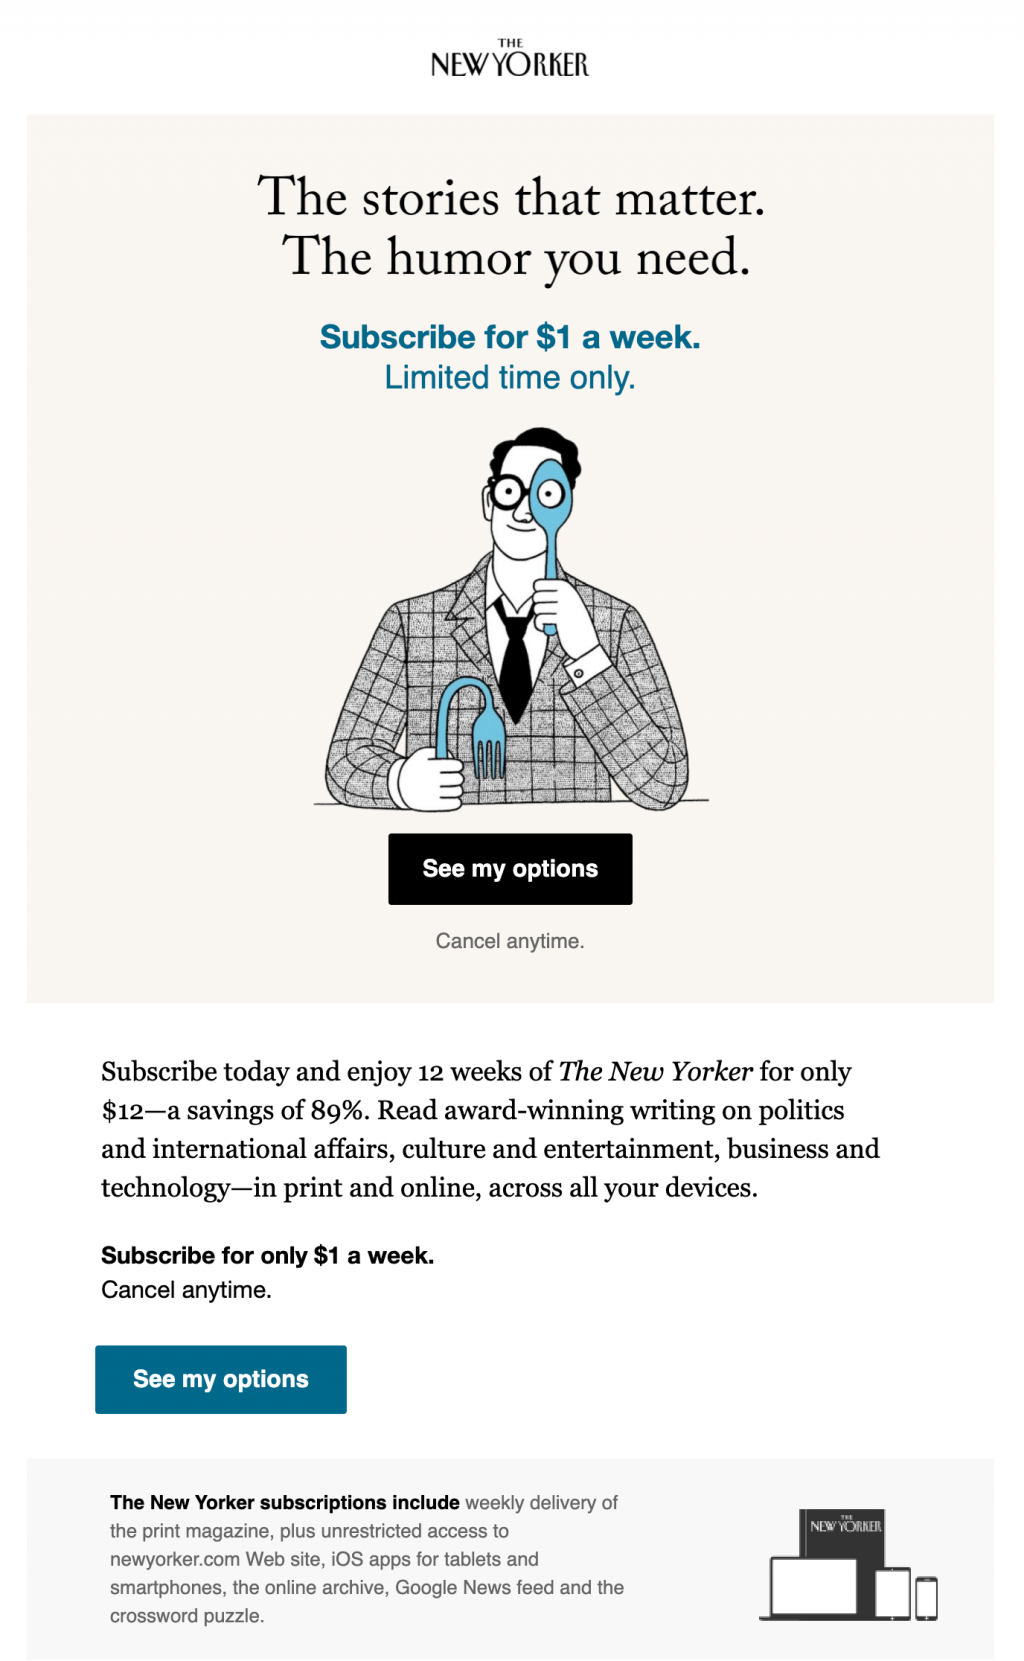 new yorker retention discount email